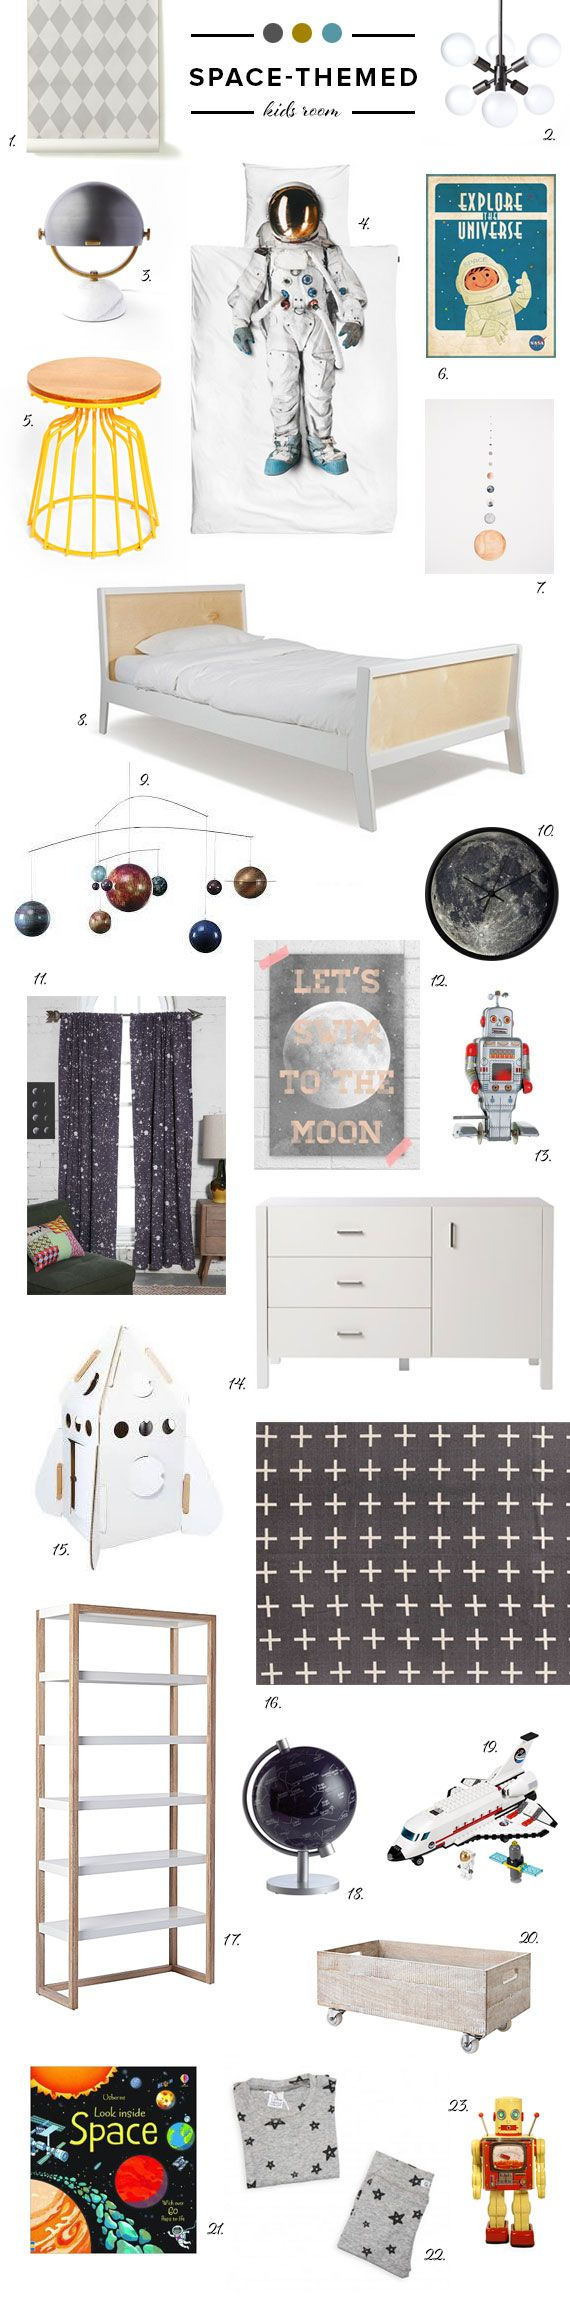 Space-themed kids room ideas - 100 Layer Cakelet